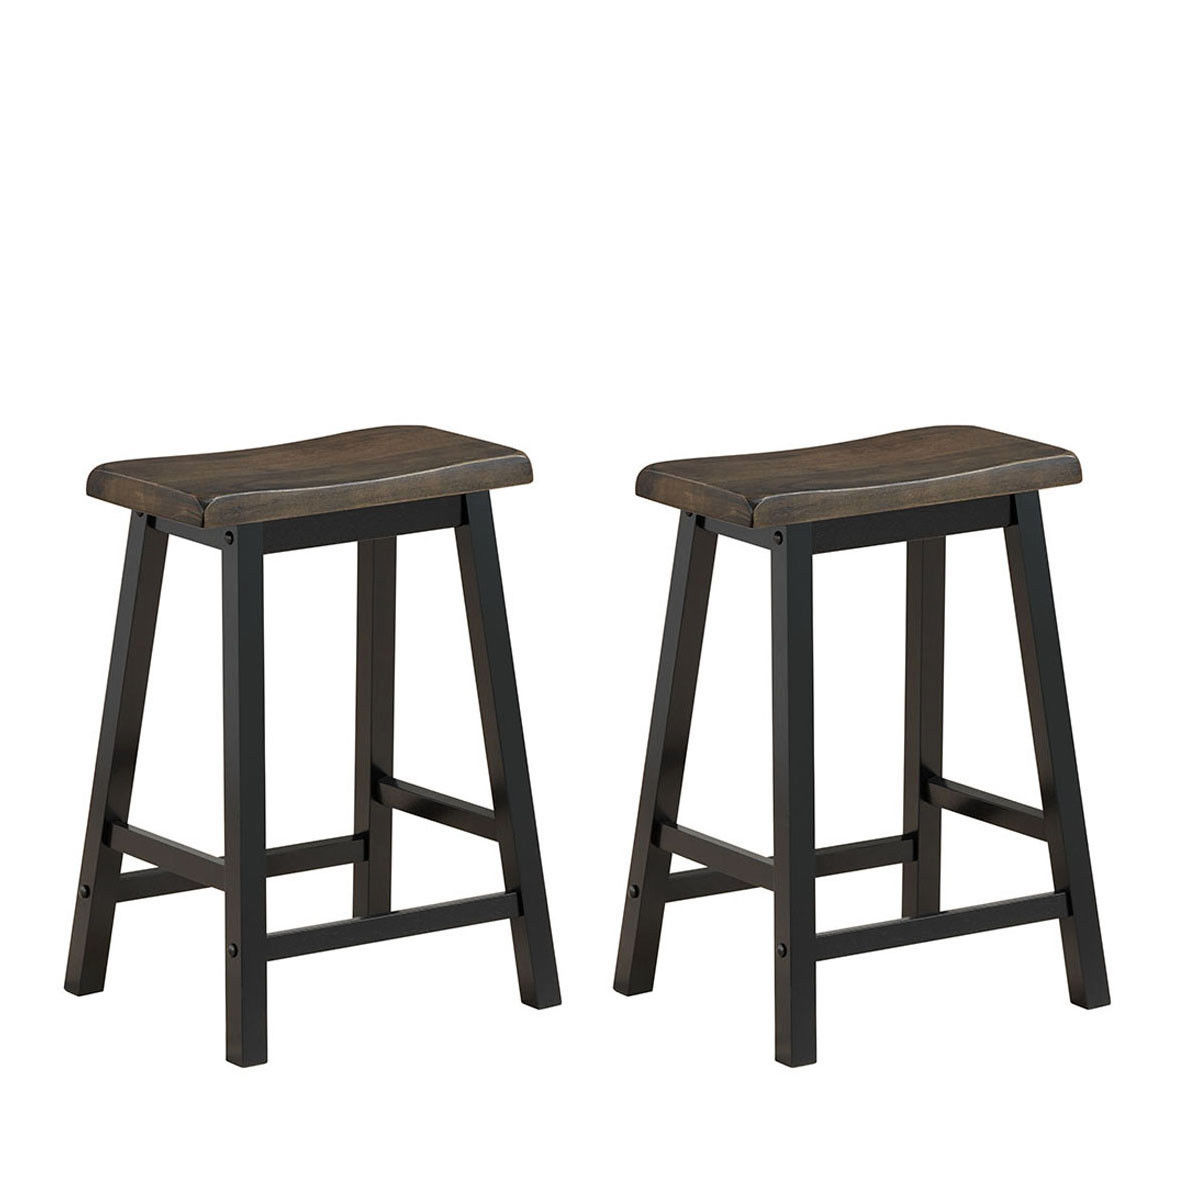 Gymax Set of 2 Bar Stools 24''H Saddle Seat Pub Chair Home Kitchen Dining Room Gray - image 6 de 6